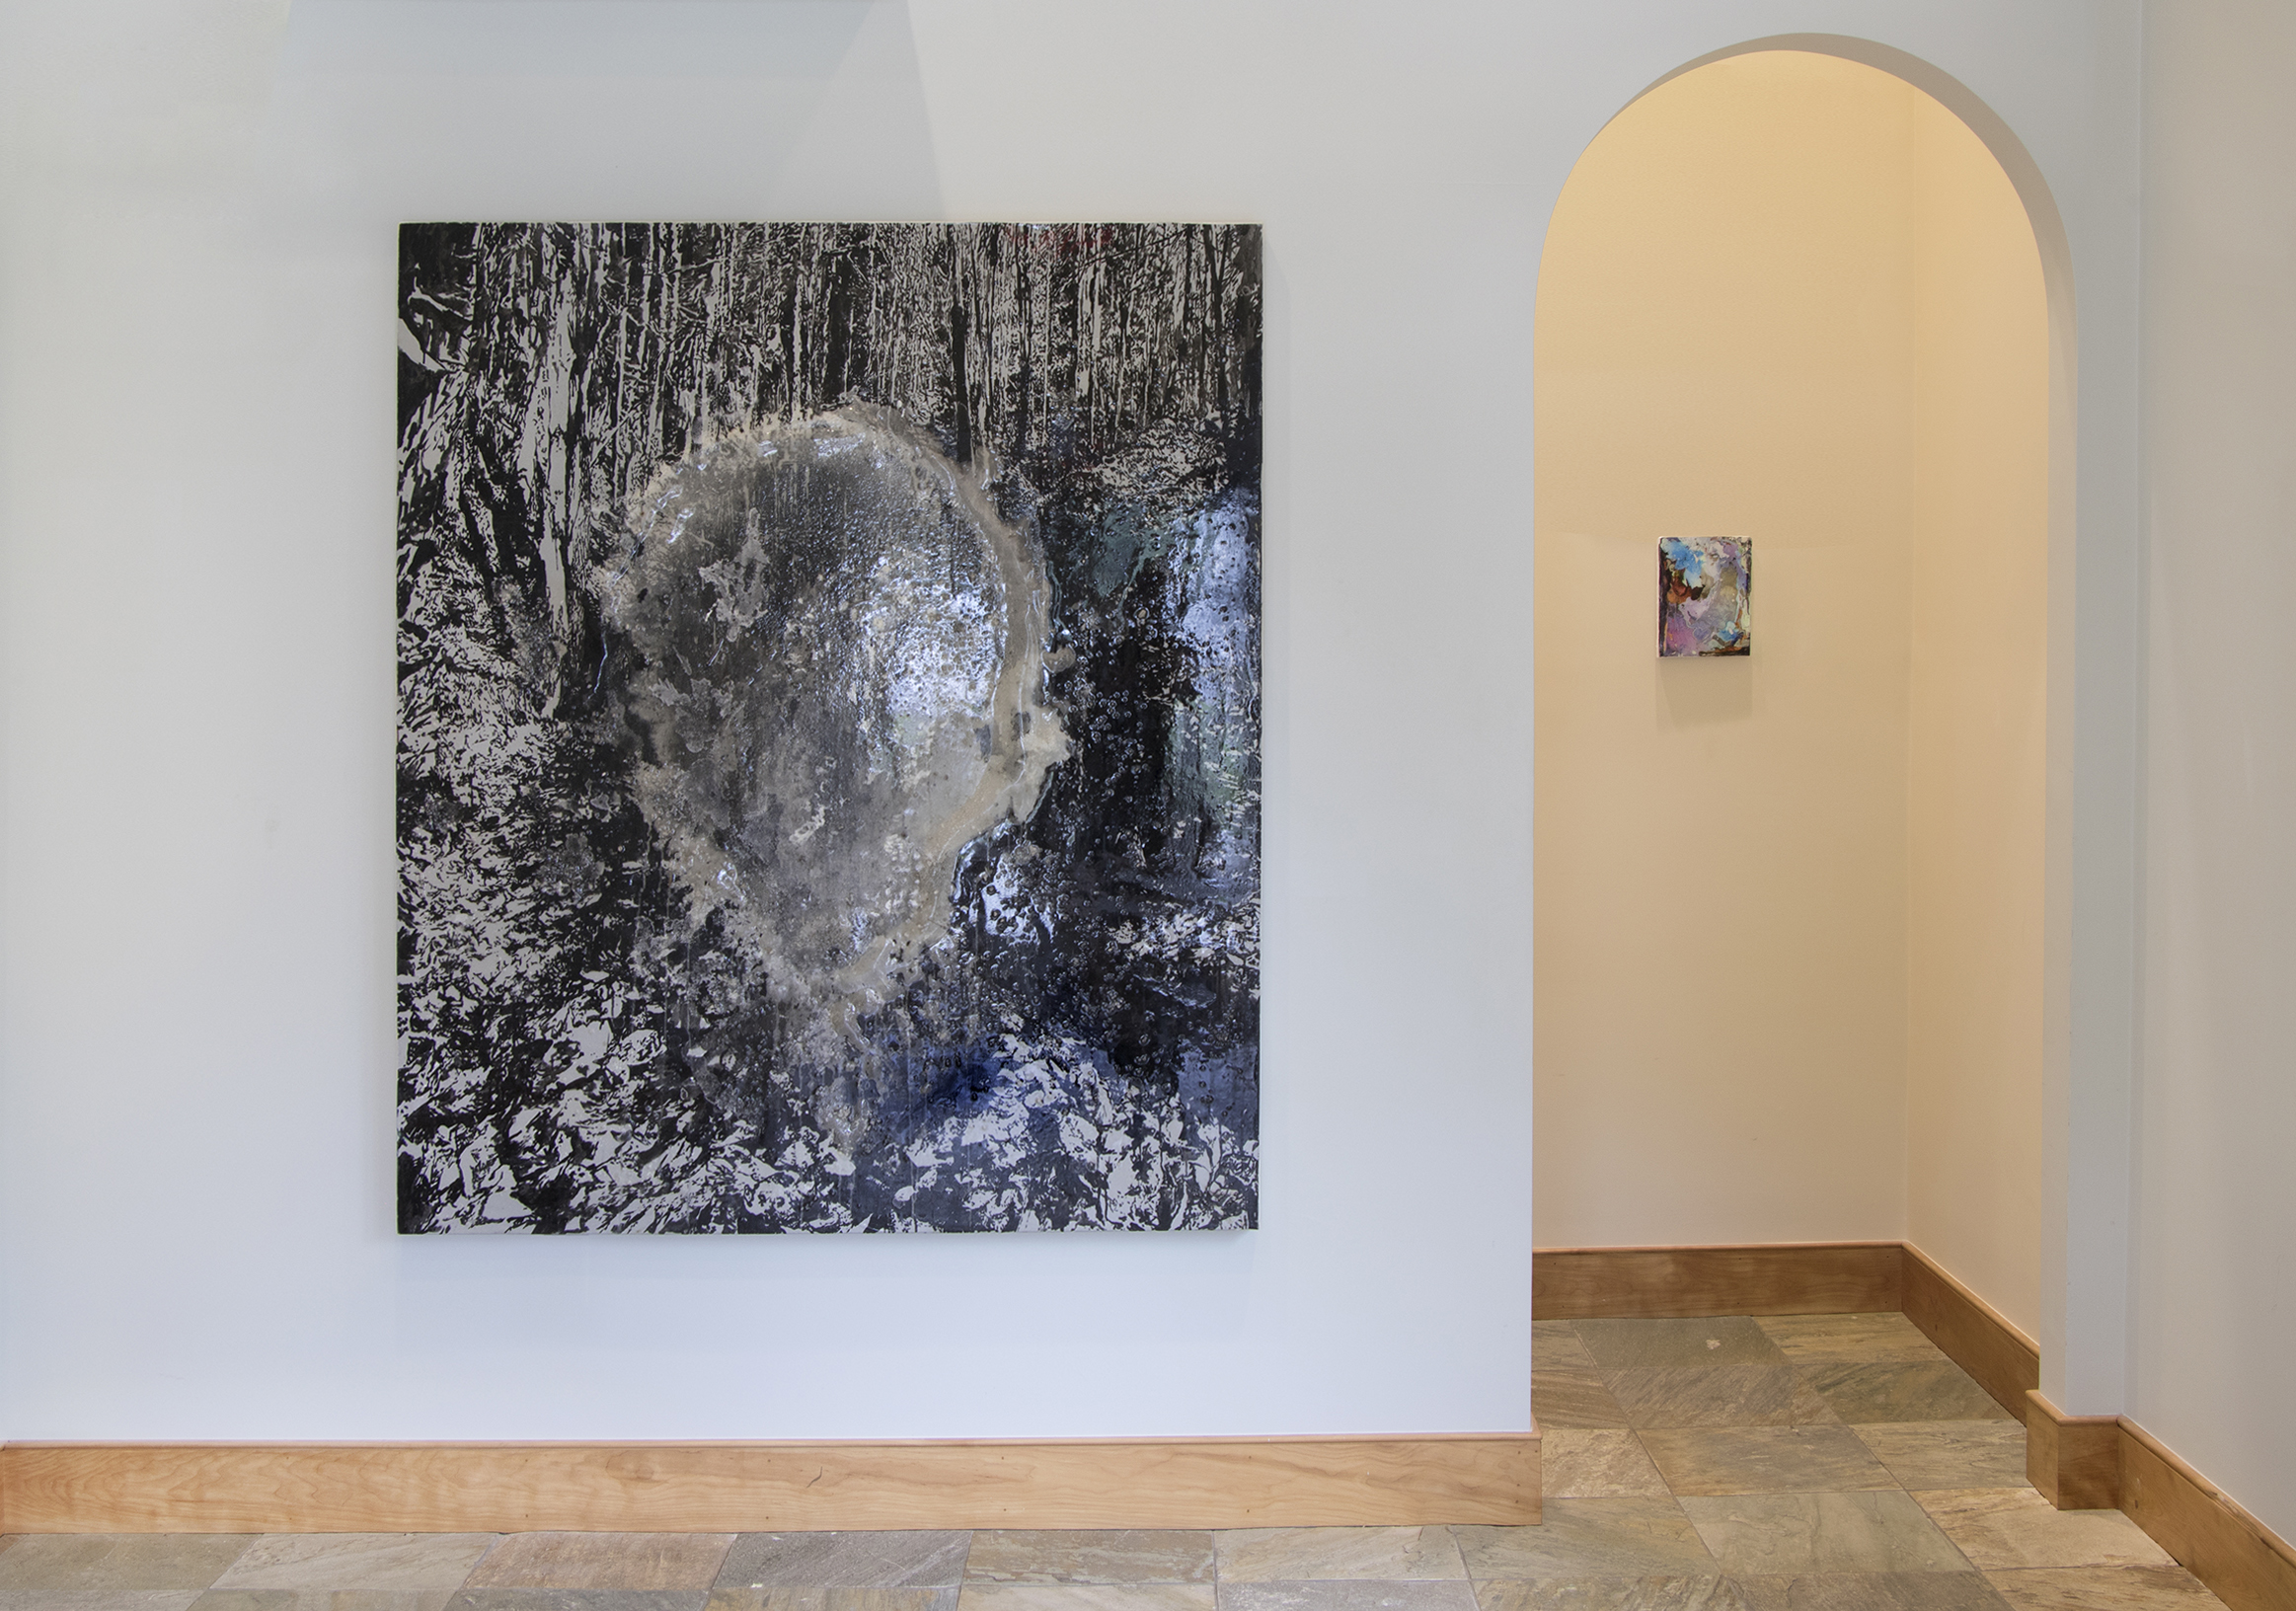 Installation view at Wellfleet Preservation Hall, 2017. Curated by Susie Nielsen.